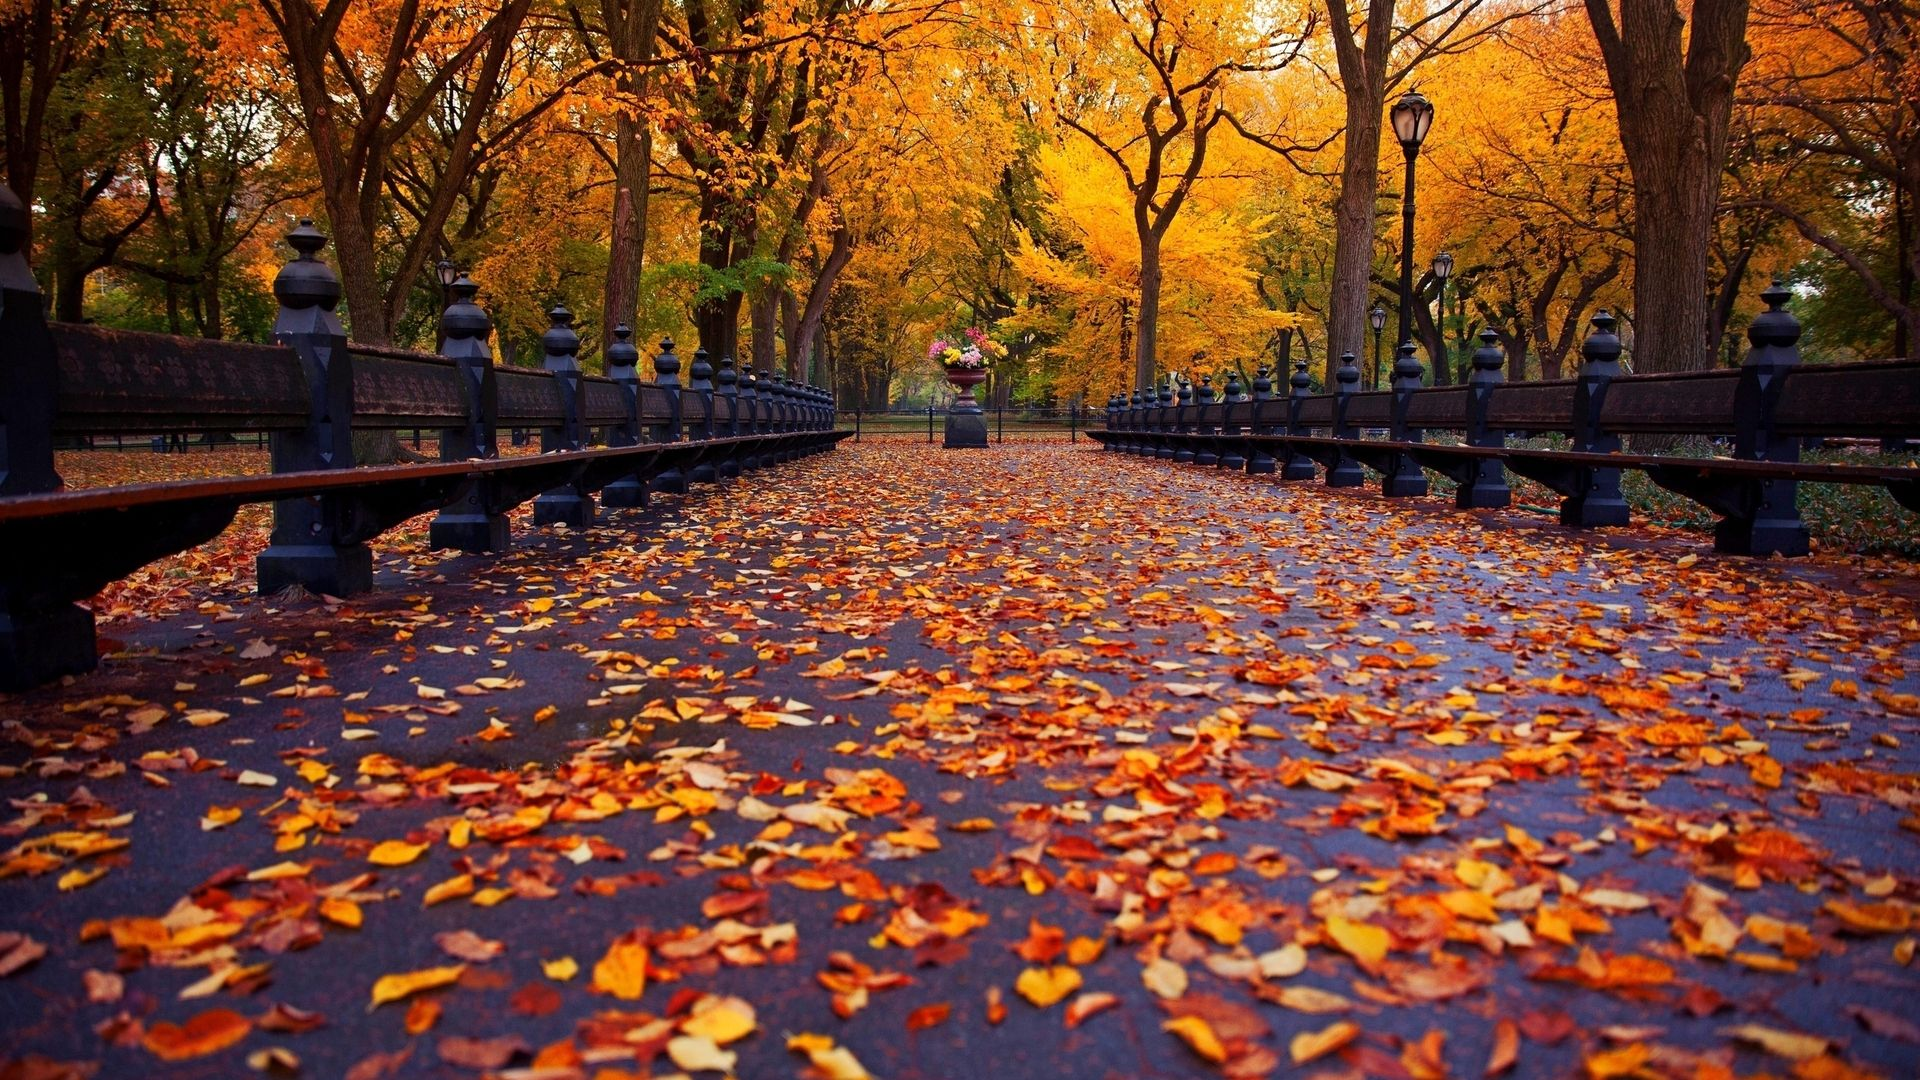 Full Hd Autumn Or Fall Wallpapers With Maple Leaves - Fall Wallpaper Desktop - HD Wallpaper